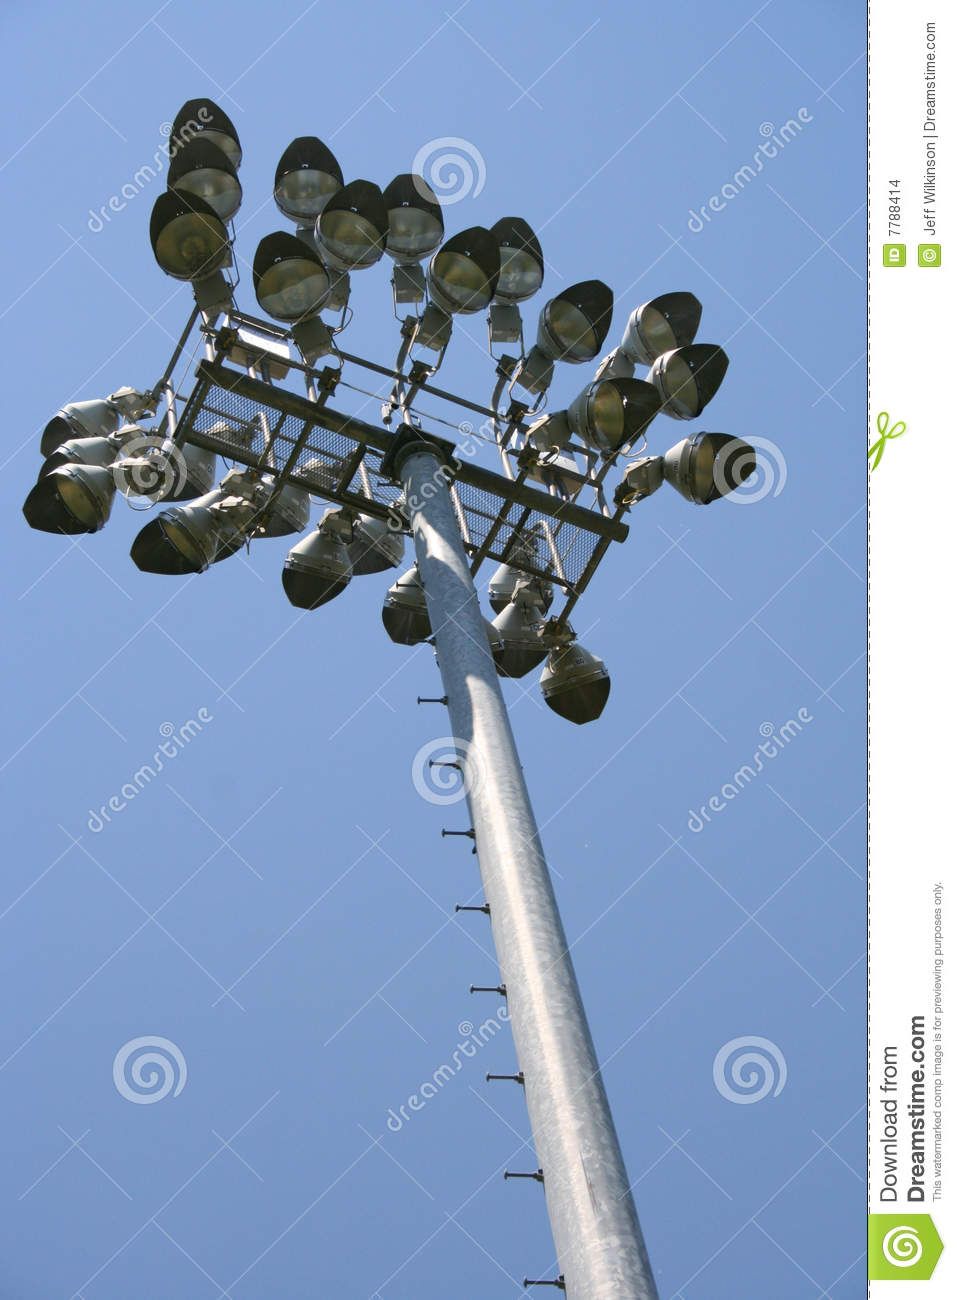 spotlights pole at sports field  royalty